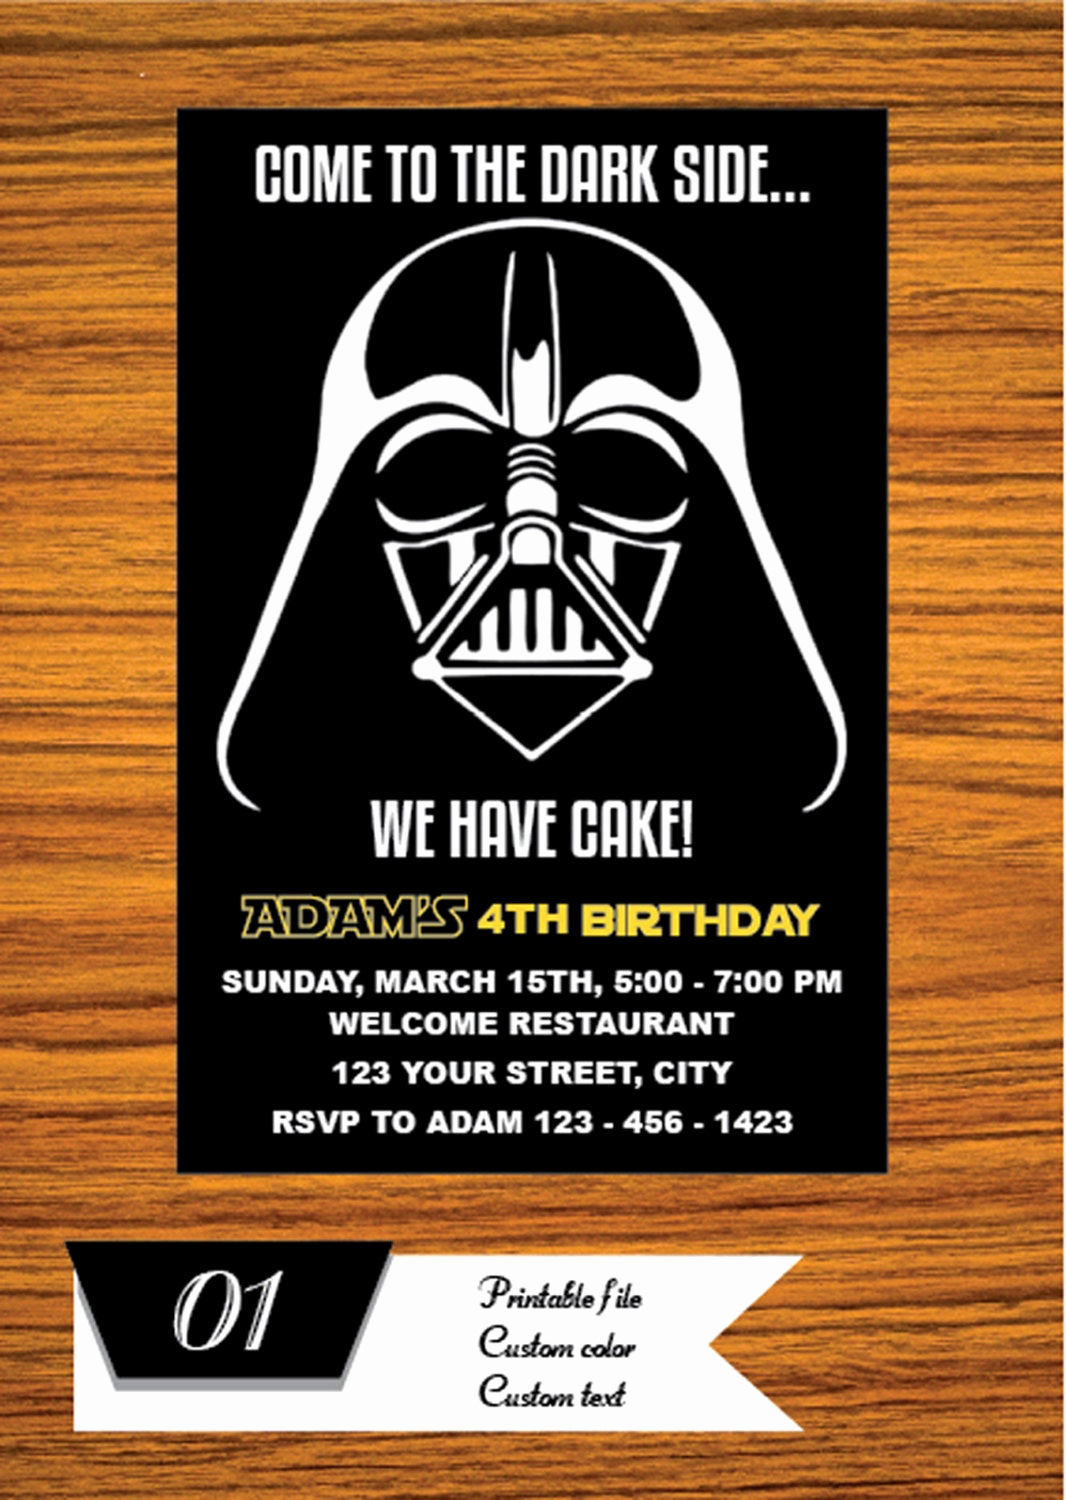 Star Wars Birthday Invitation Inspirational Star Wars Invitation Star Wars Party Invitation Star Wars